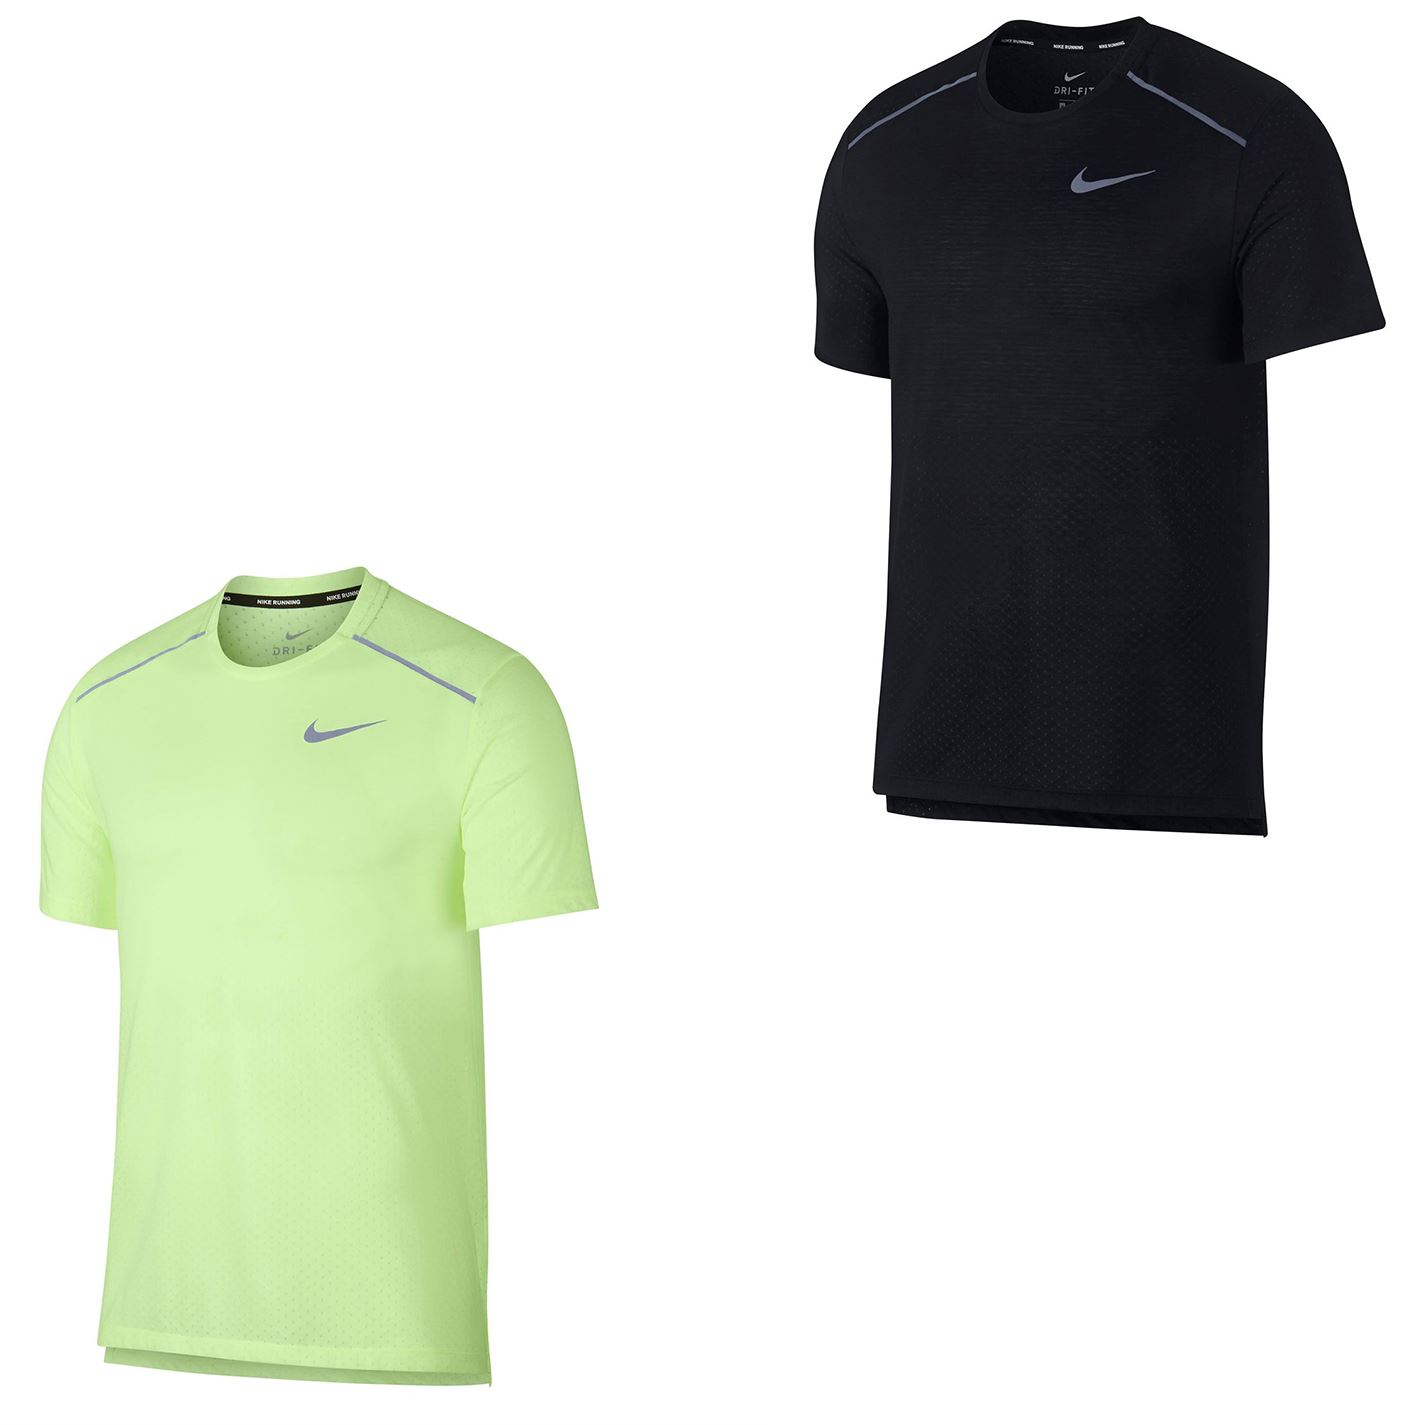 Details about Nike Running Breathe Rise 365 Dri Fit T Shirt Mens Fitness Top Tee Black Small